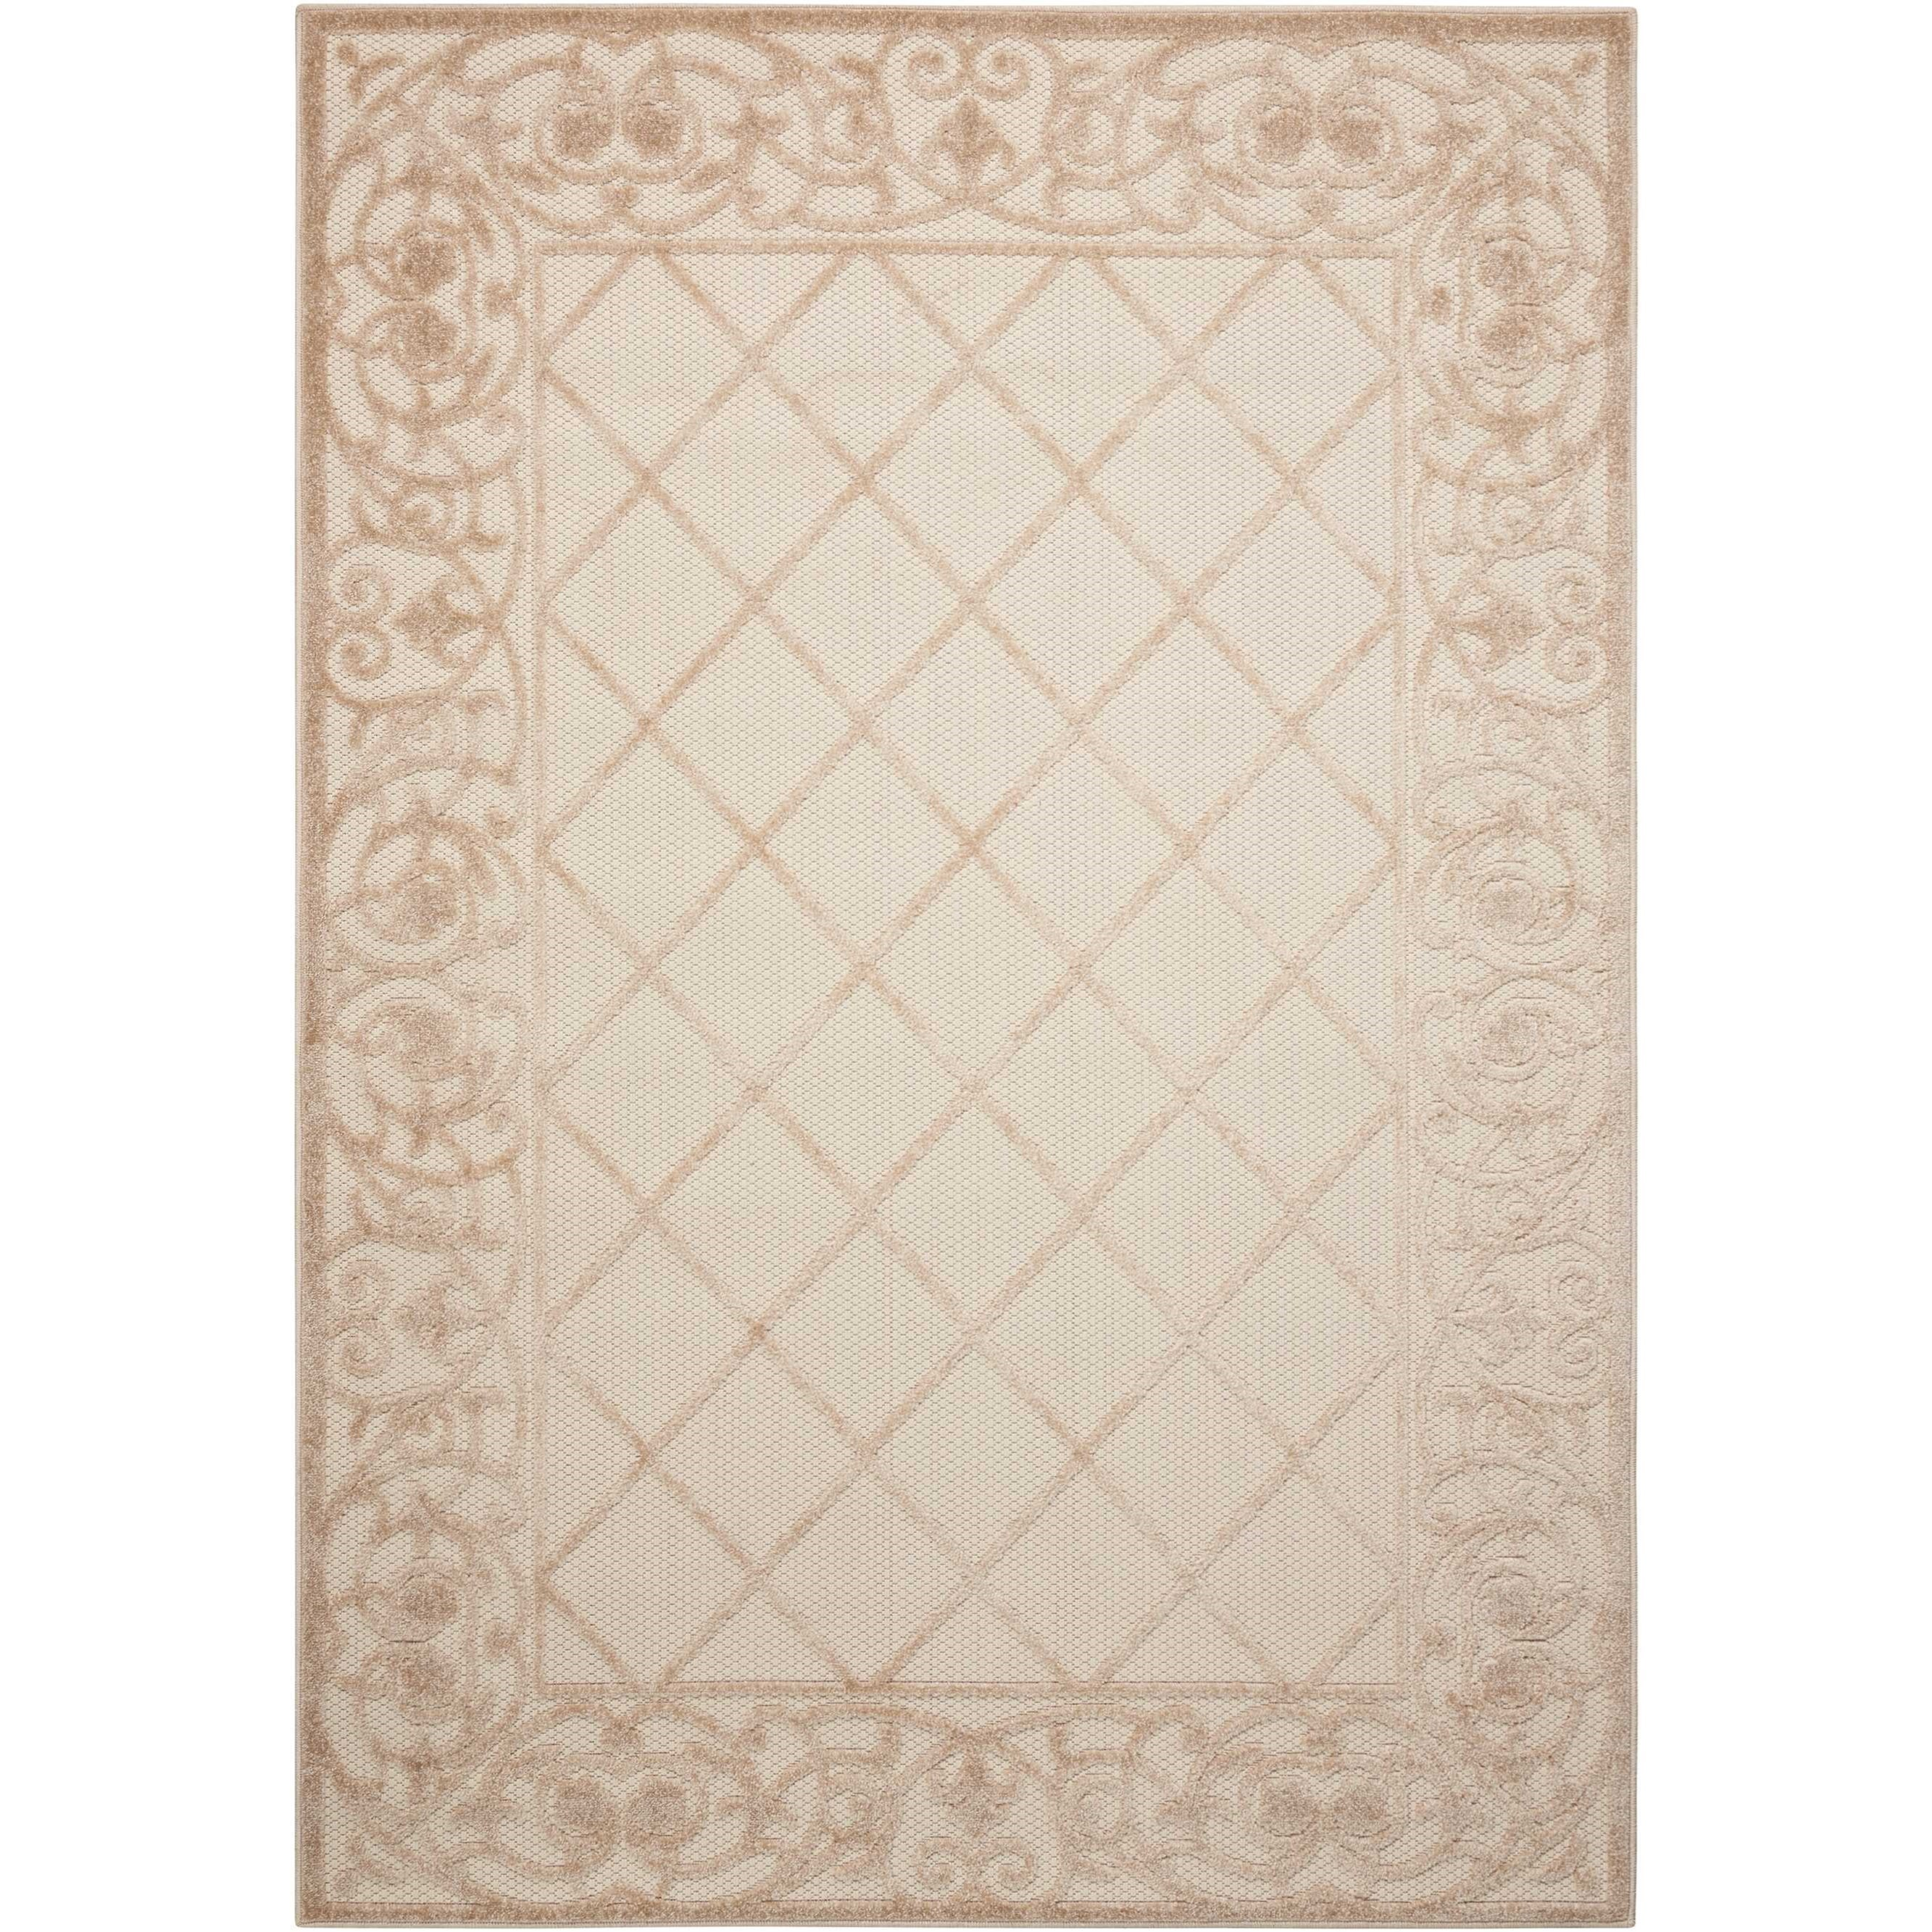 """Aloha 9'6"""" X 13' Cream                Rug by Nourison at Home Collections Furniture"""